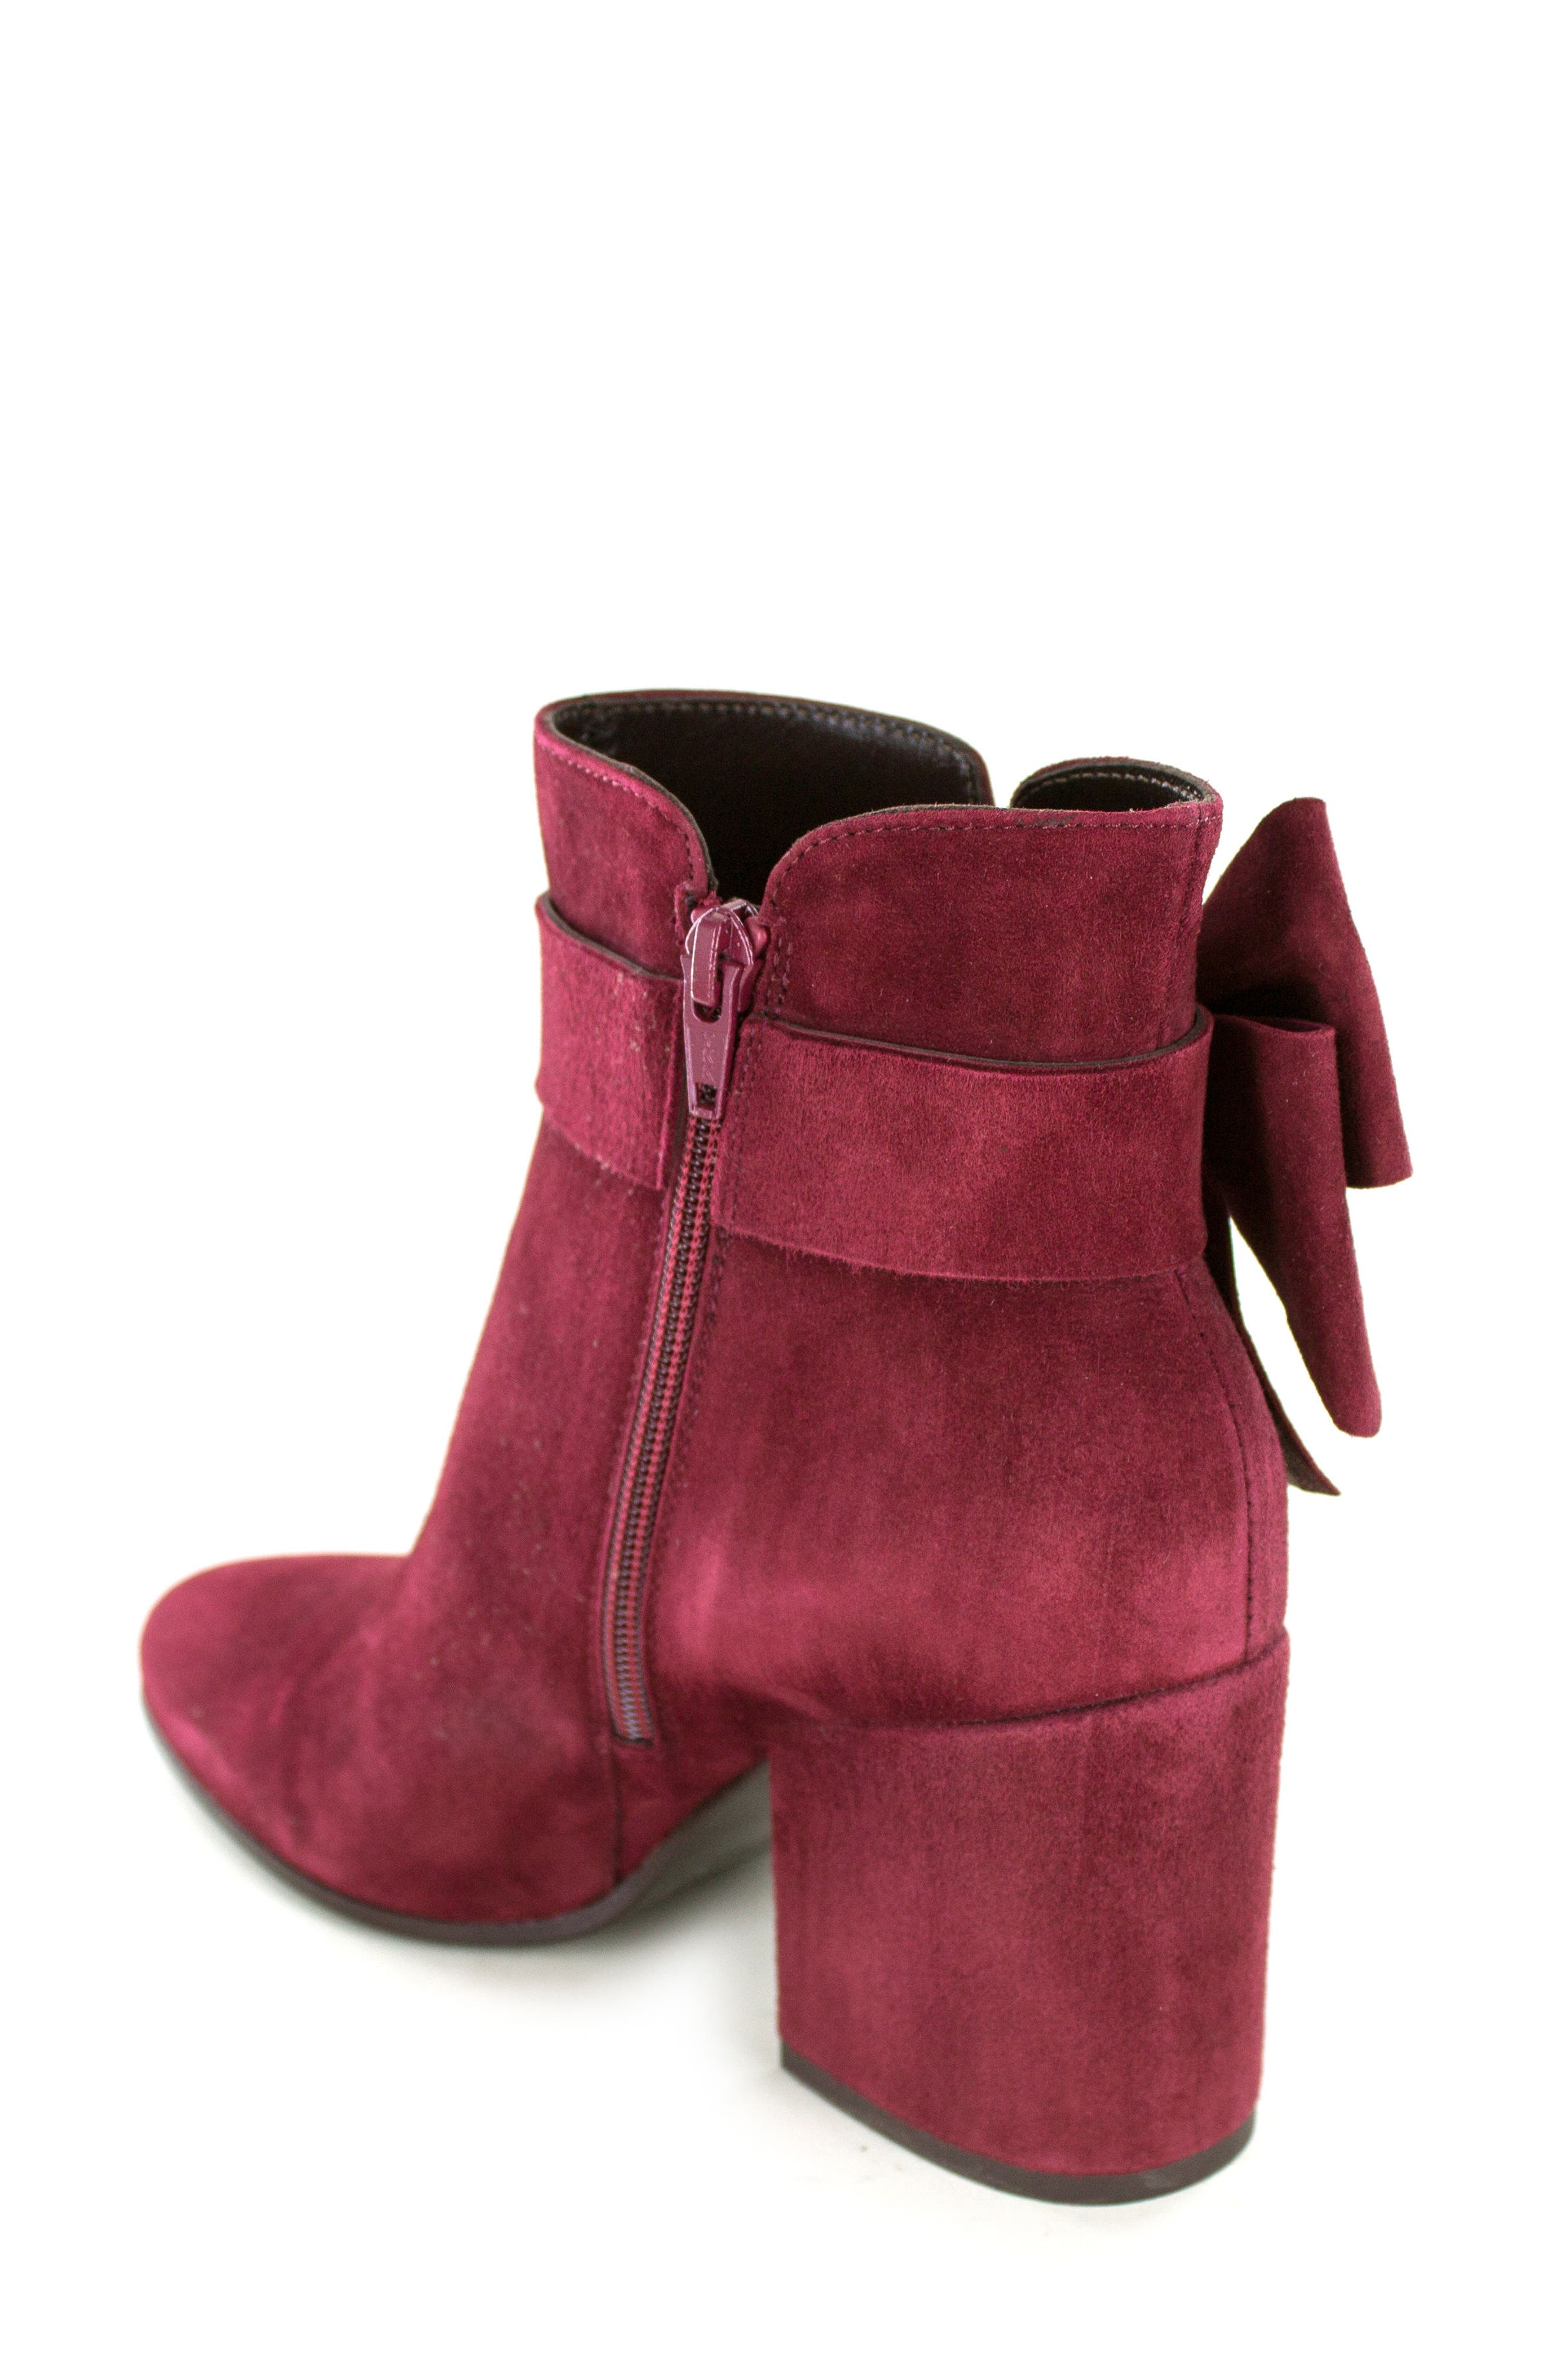 Stevie Bootie,                             Alternate thumbnail 2, color,                             Burgundy Suede